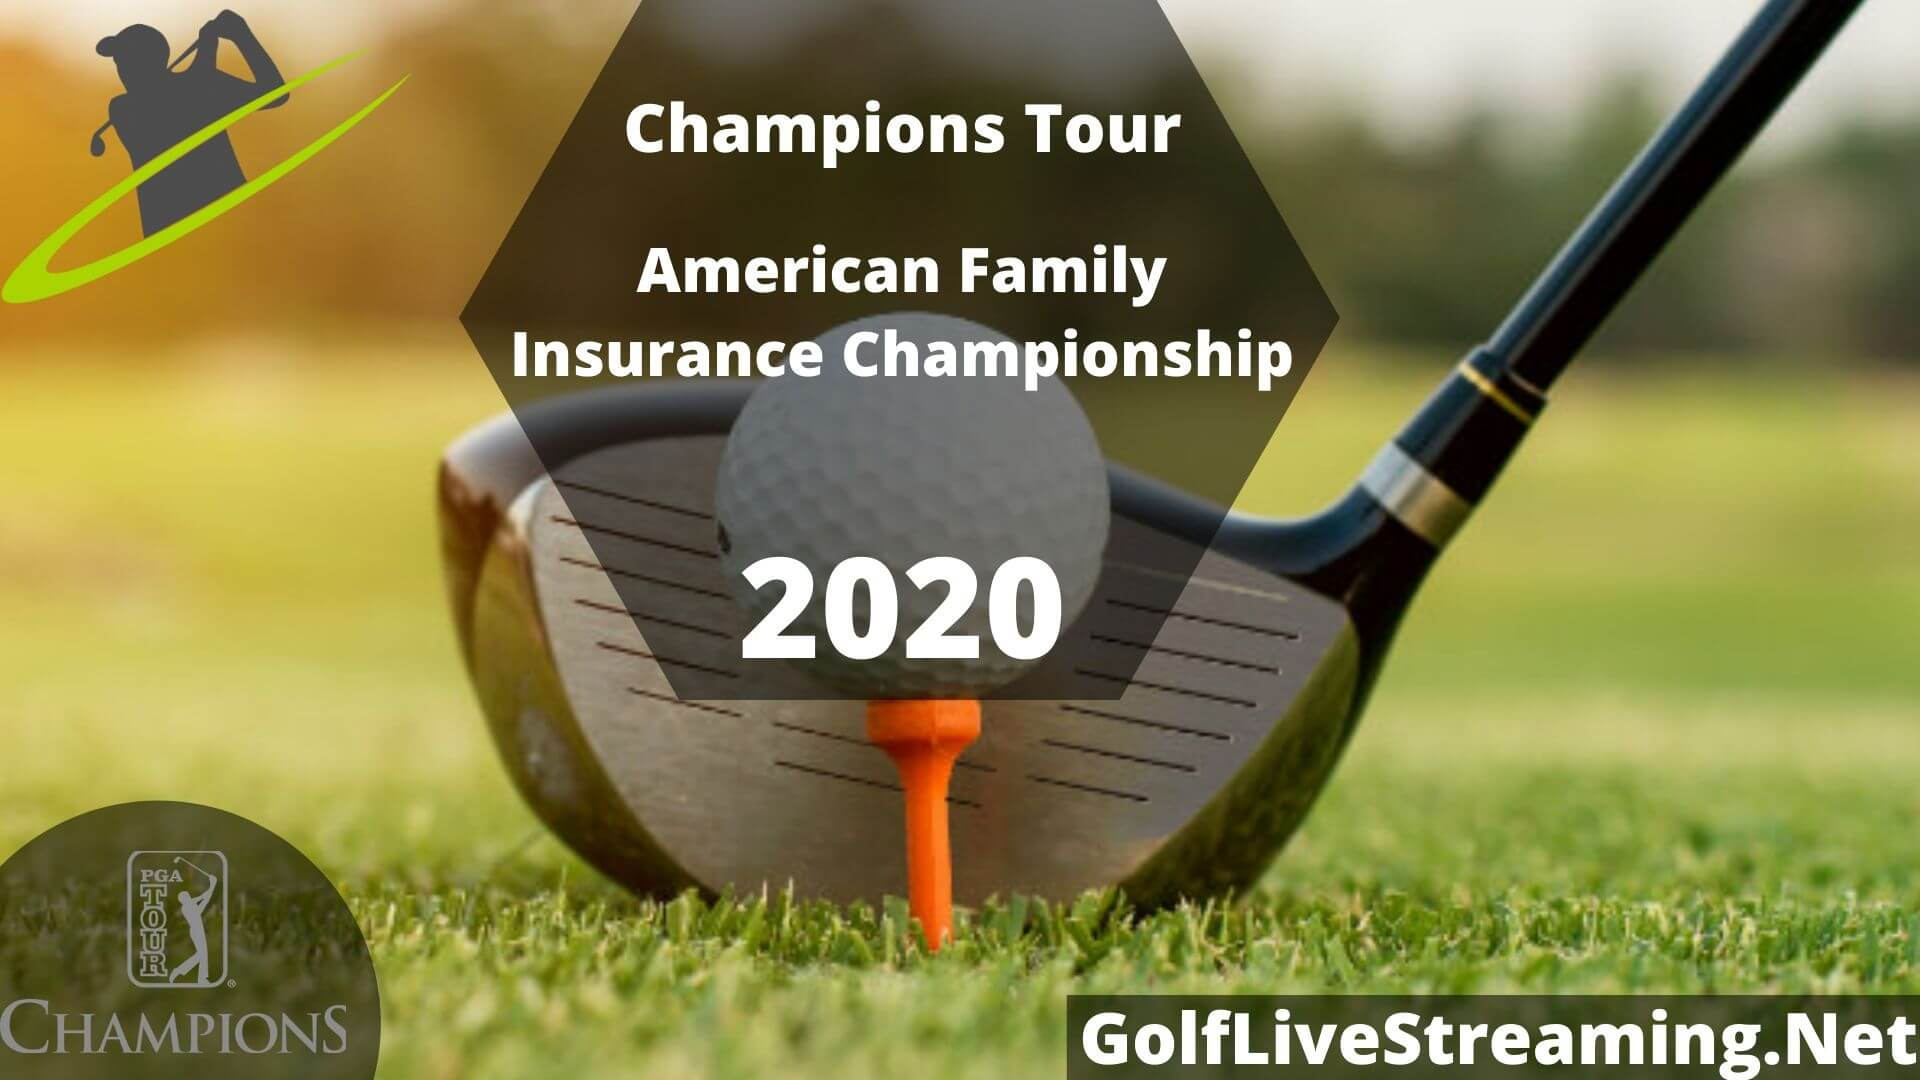 American Family Insurance Championship Live Stream 2020 | Champions Tour Round 1